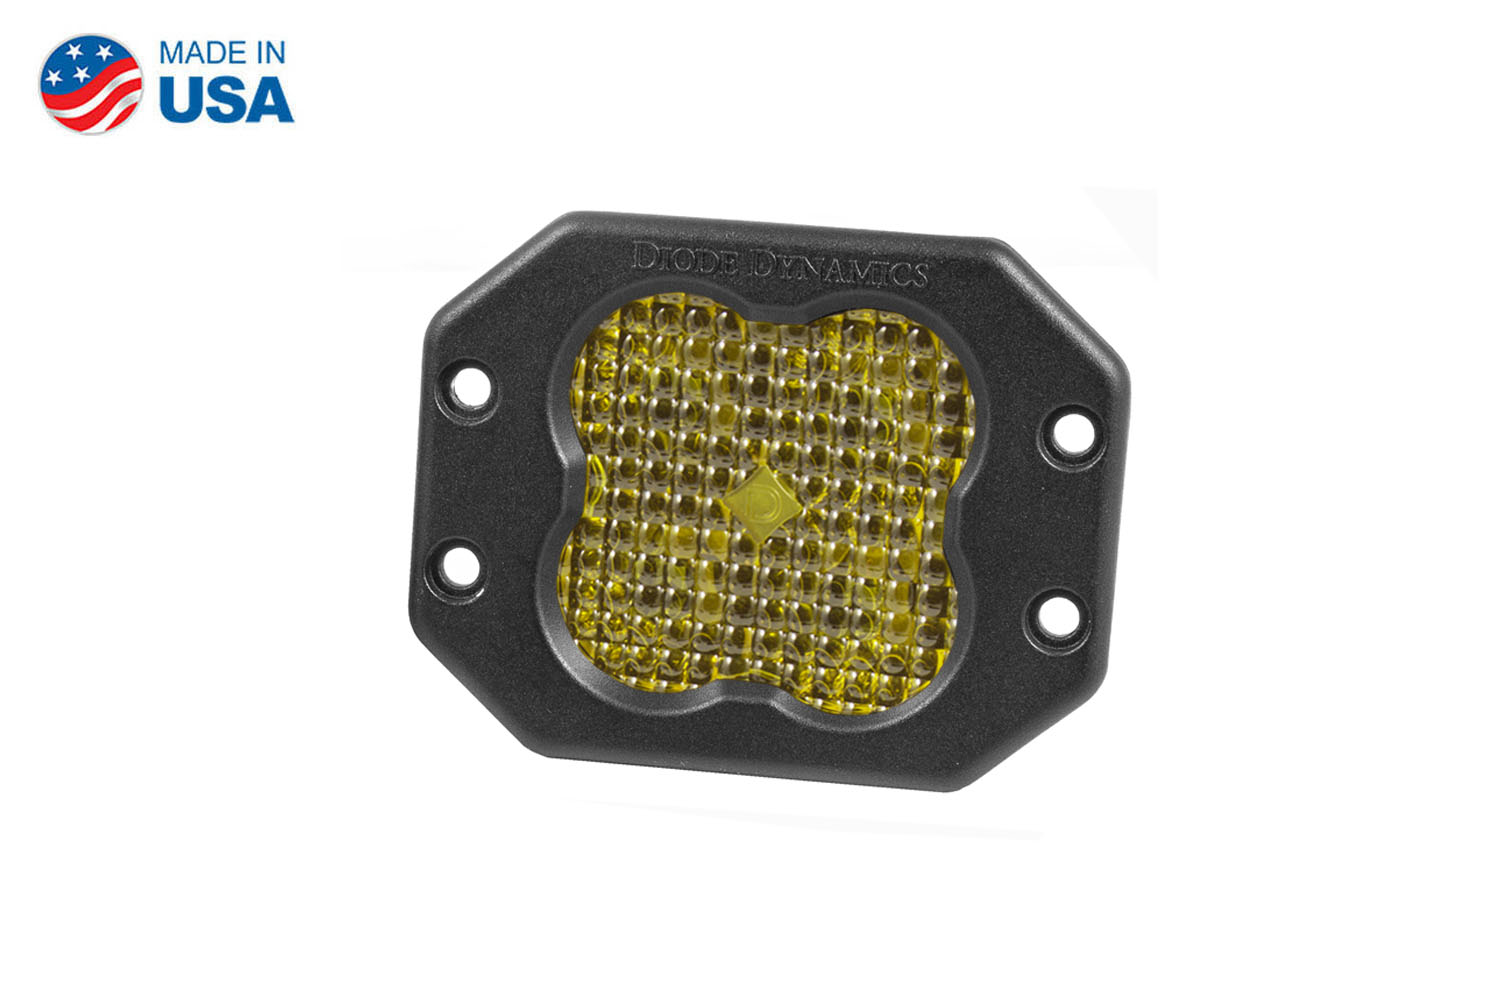 Diode Dynamics Worklight SS3 Sport Yellow Flood Flush (single)